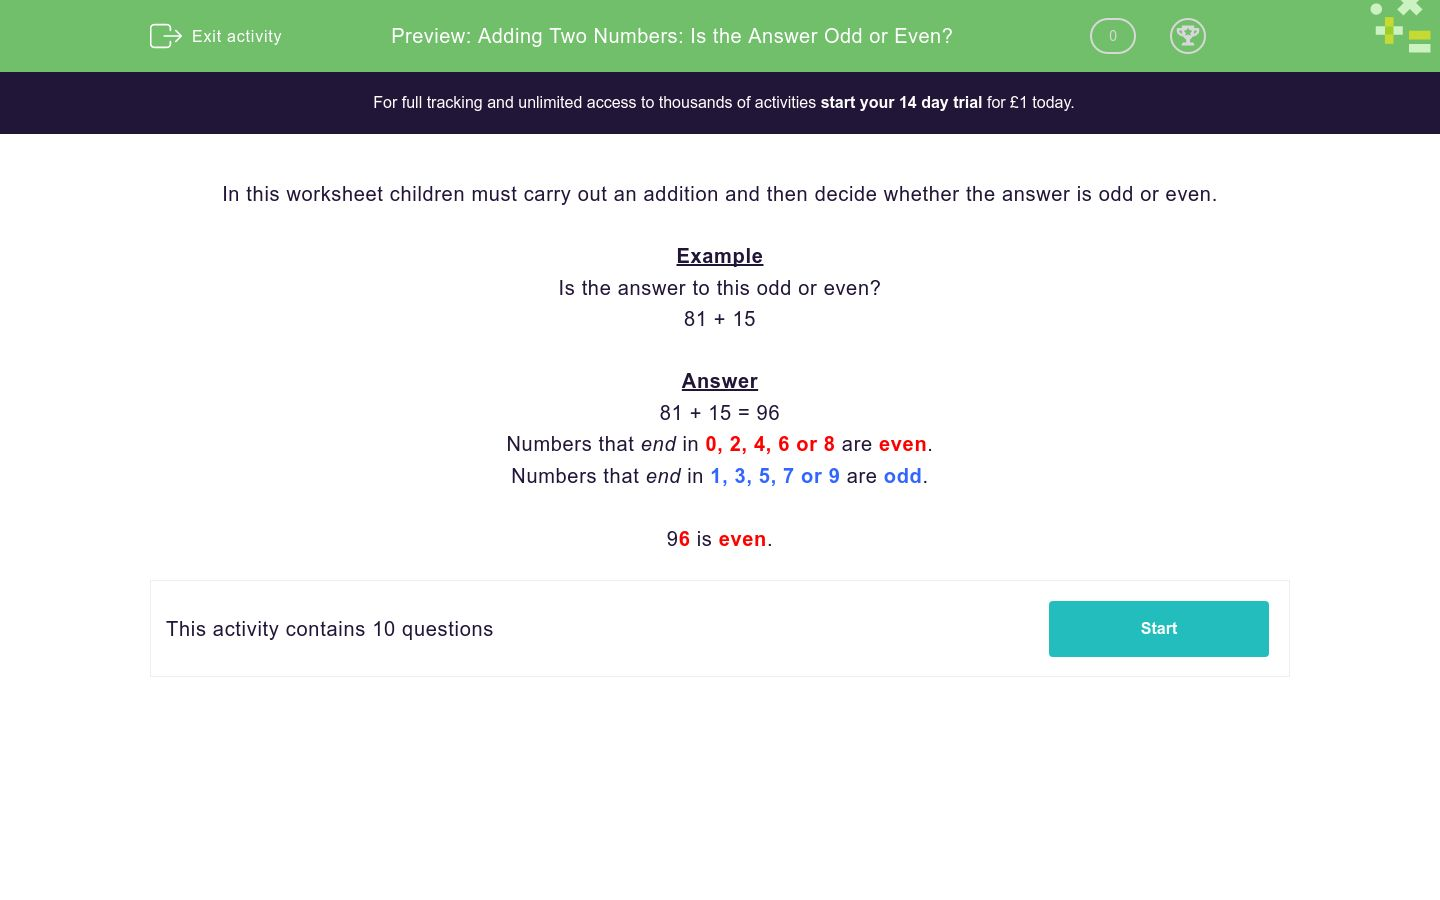 'Adding Two Numbers: Is the Answer Odd or Even?' worksheet